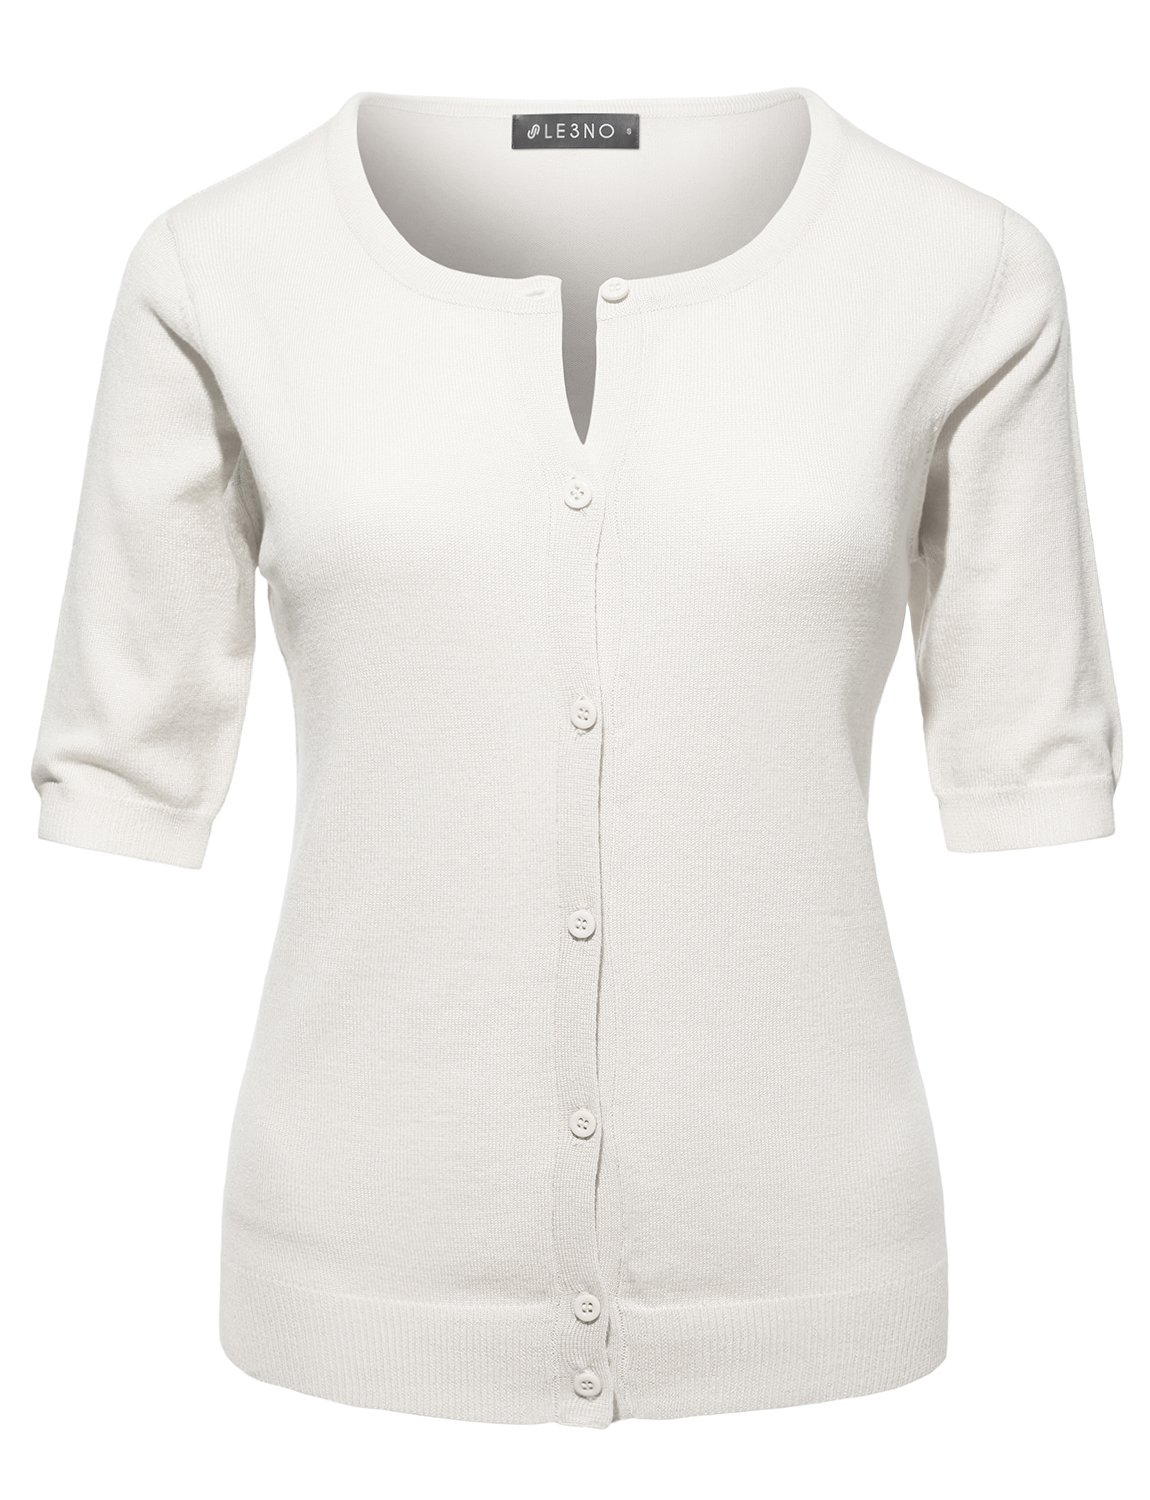 LE3NO Womens Fitted Short Sleeve Fine Knit Cardigan